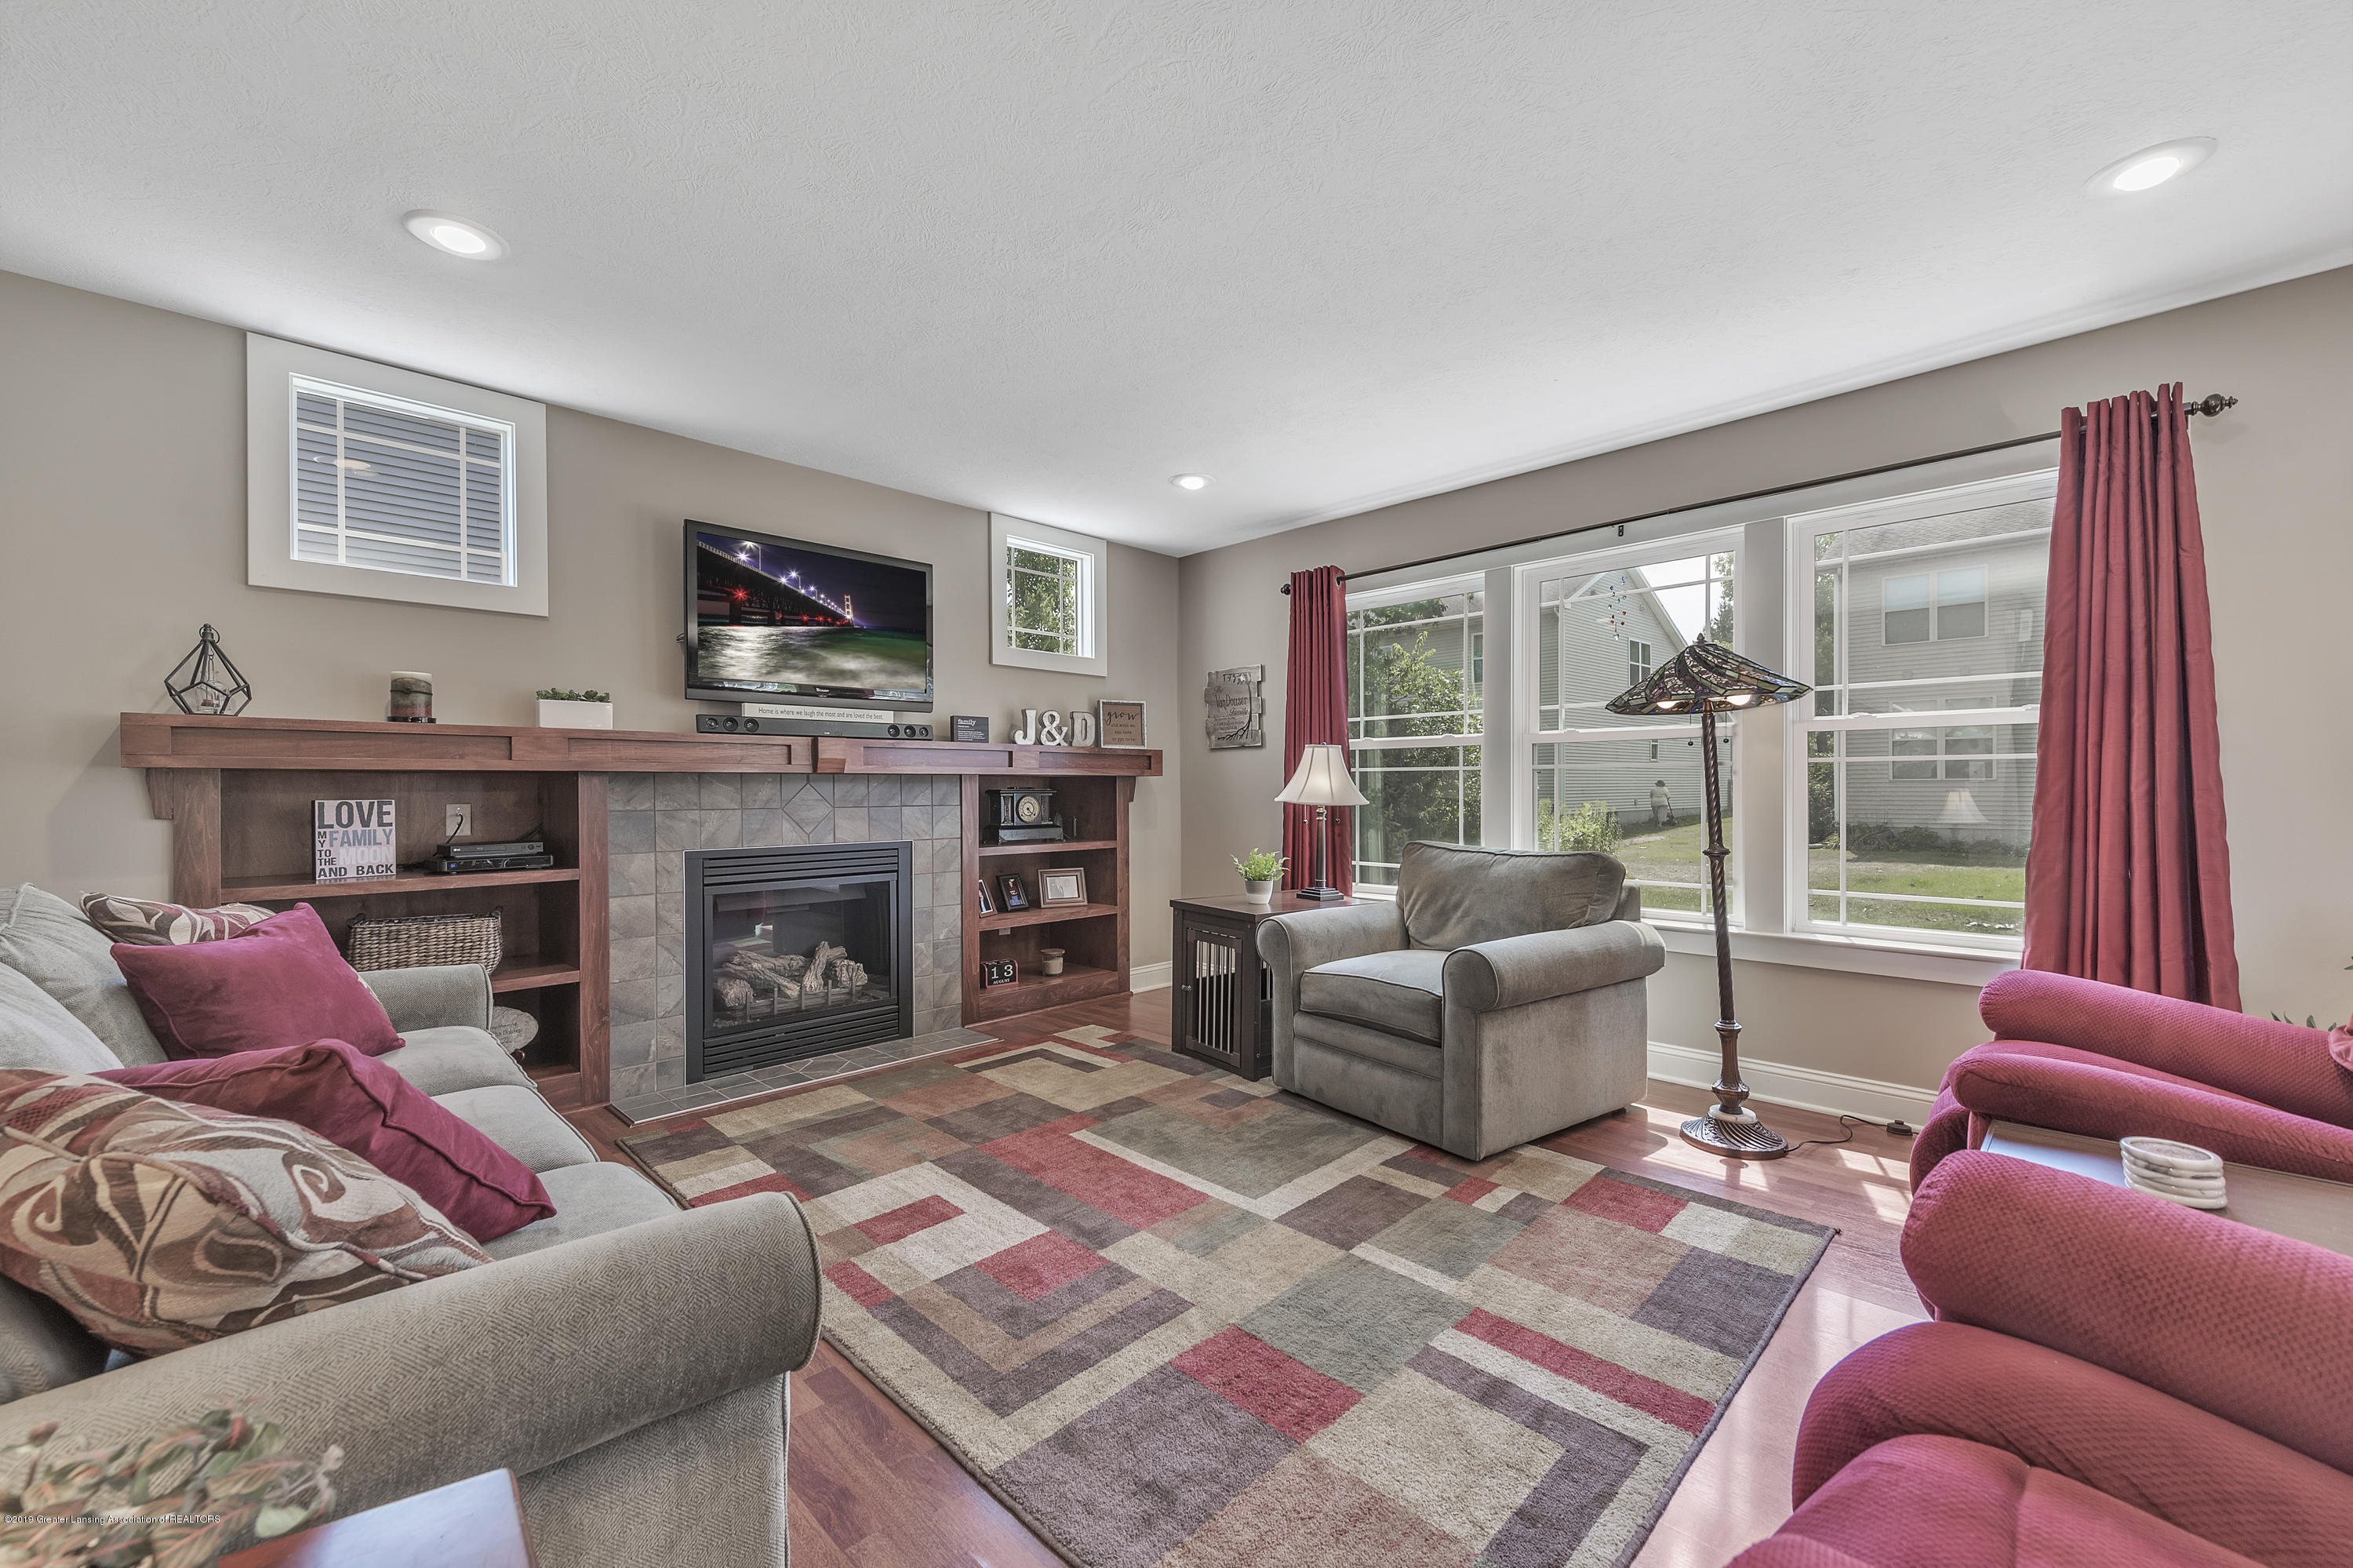 5850 Chartres Way - 5850-Chartres-Way-East-Lansing-MI-6 - 6